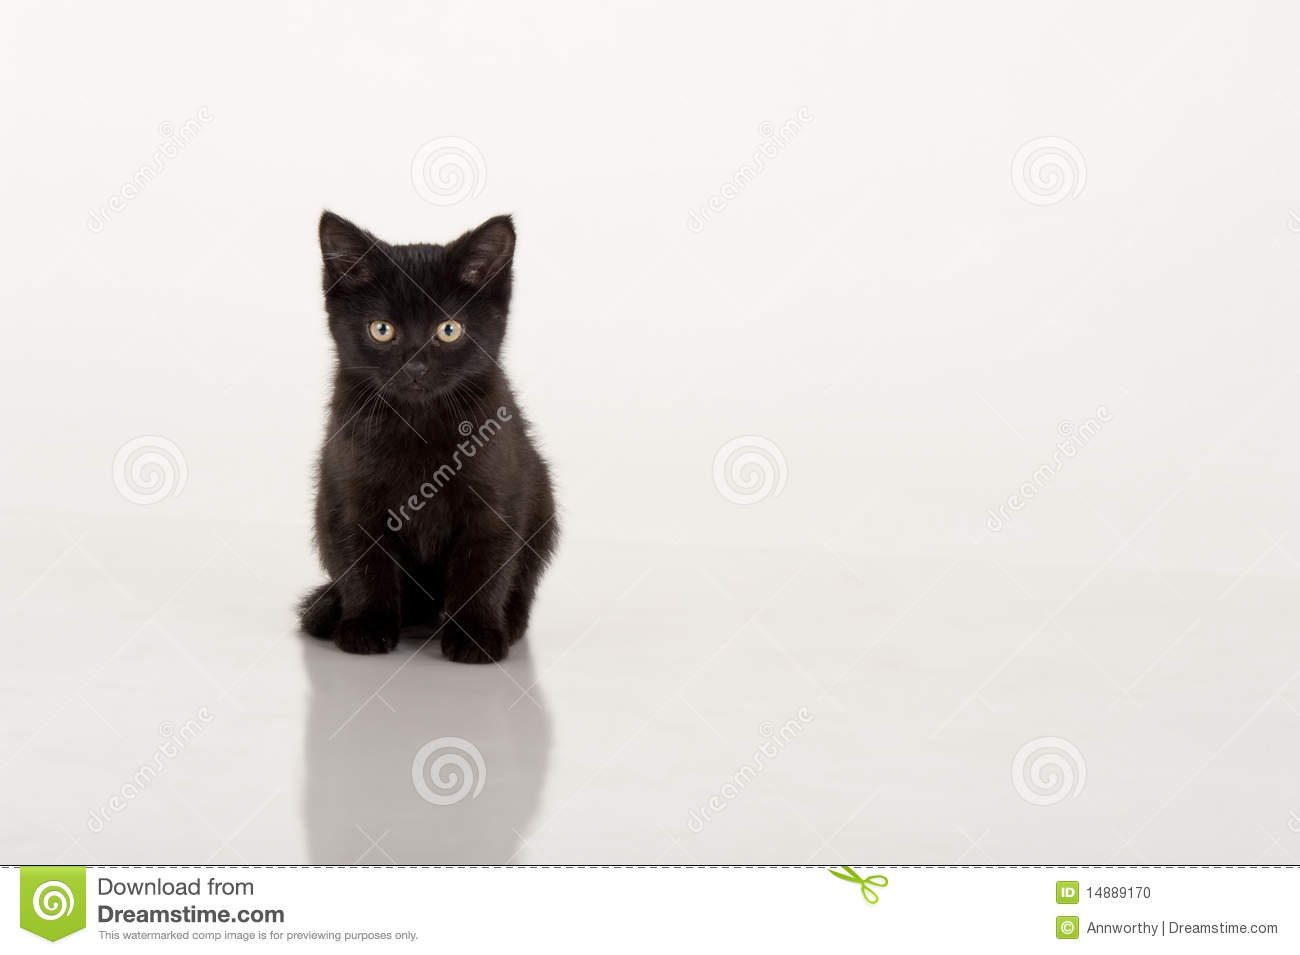 Cute Black Kitten Against White Background Stock Photo - Image ...